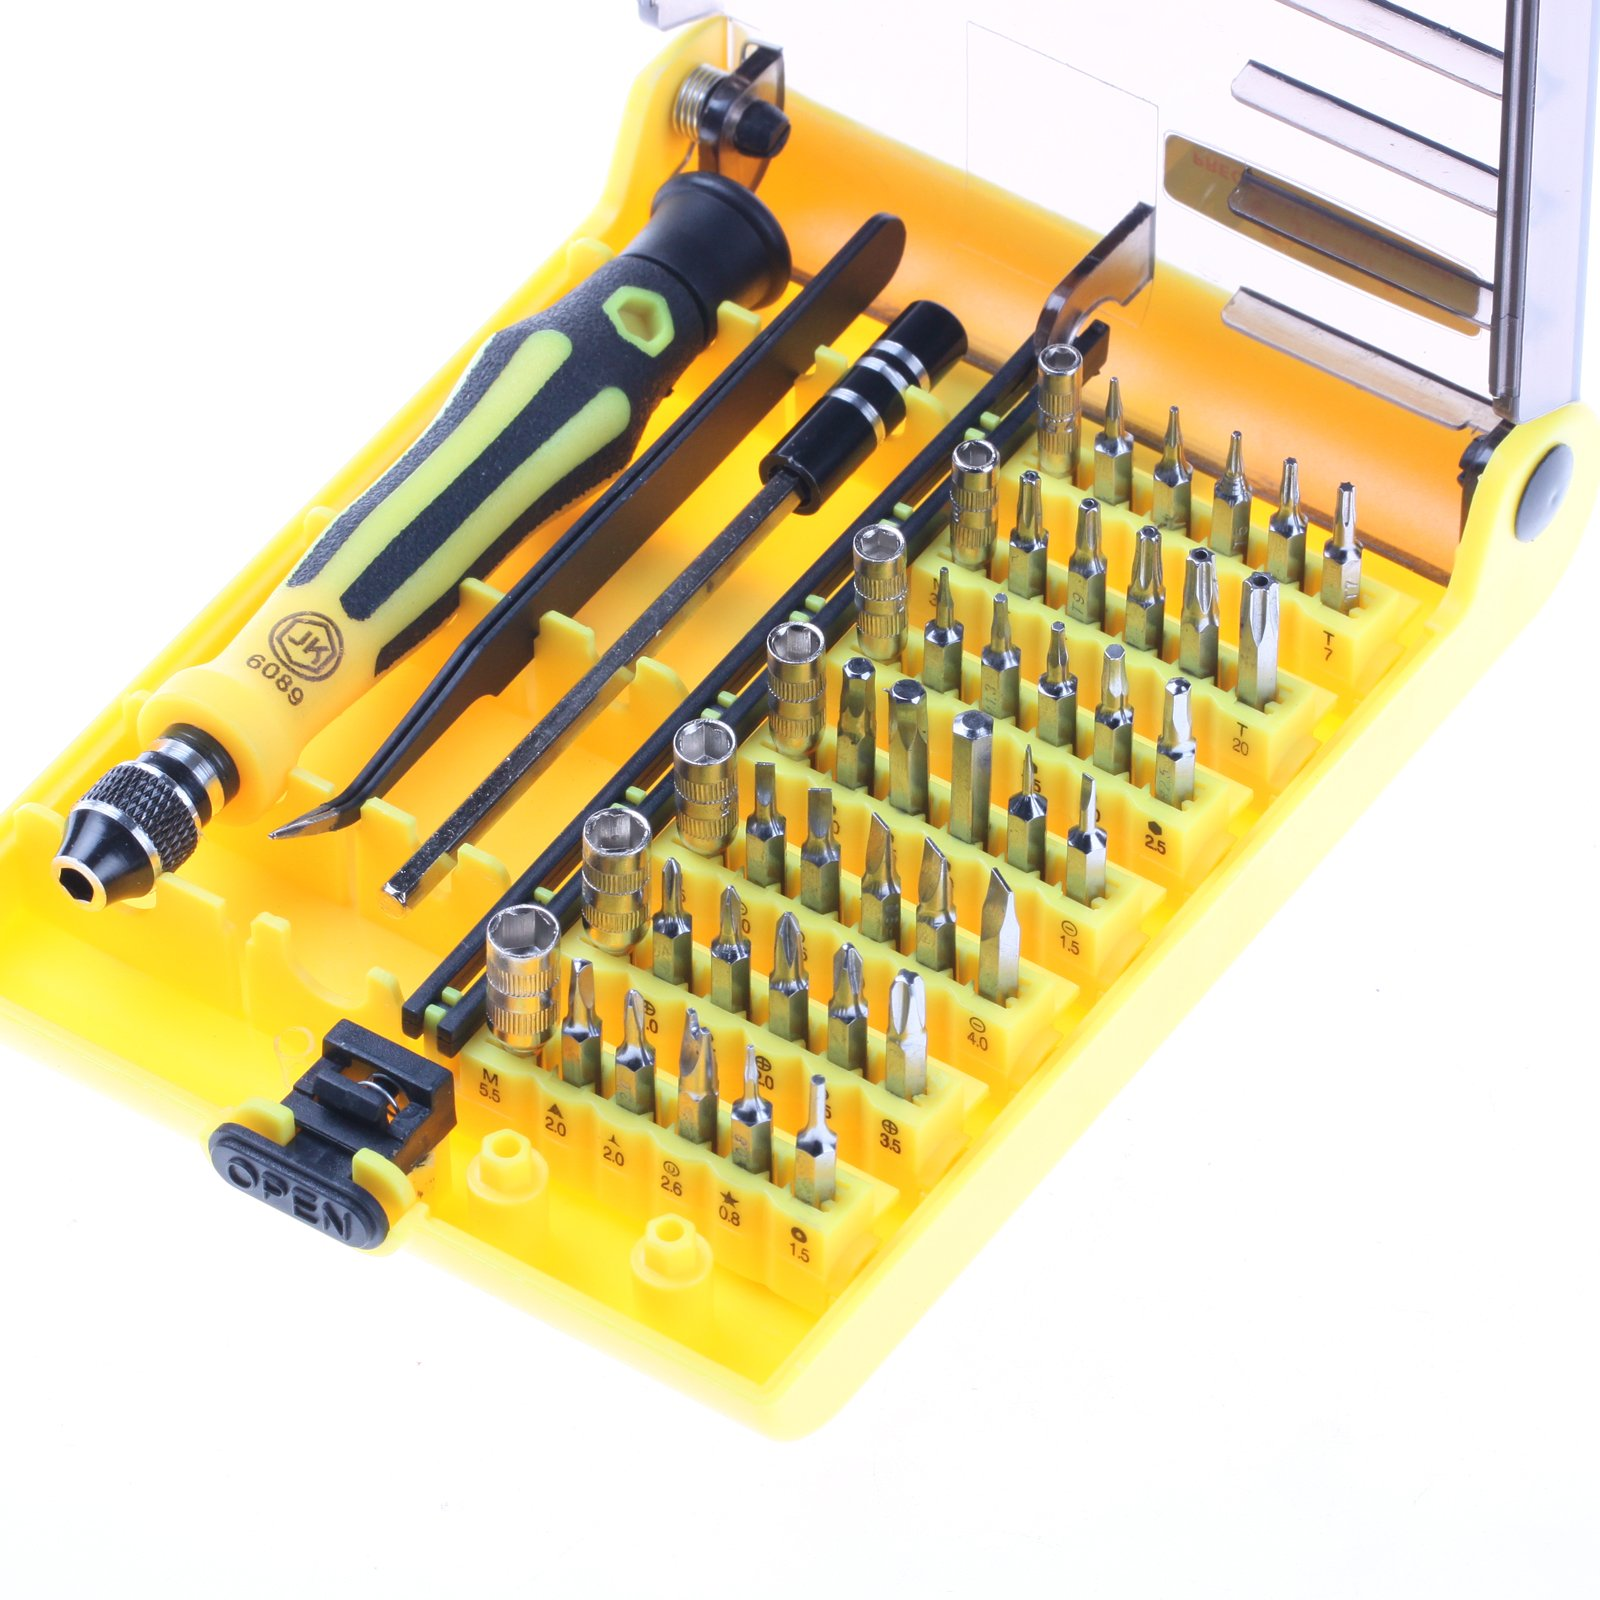 45 in1 Torx Precision Screwdriver Repair Tool RC PC Mobile Flexible Kit Set for Cell Phone Rc Pc Mobile Phone Car and other devices